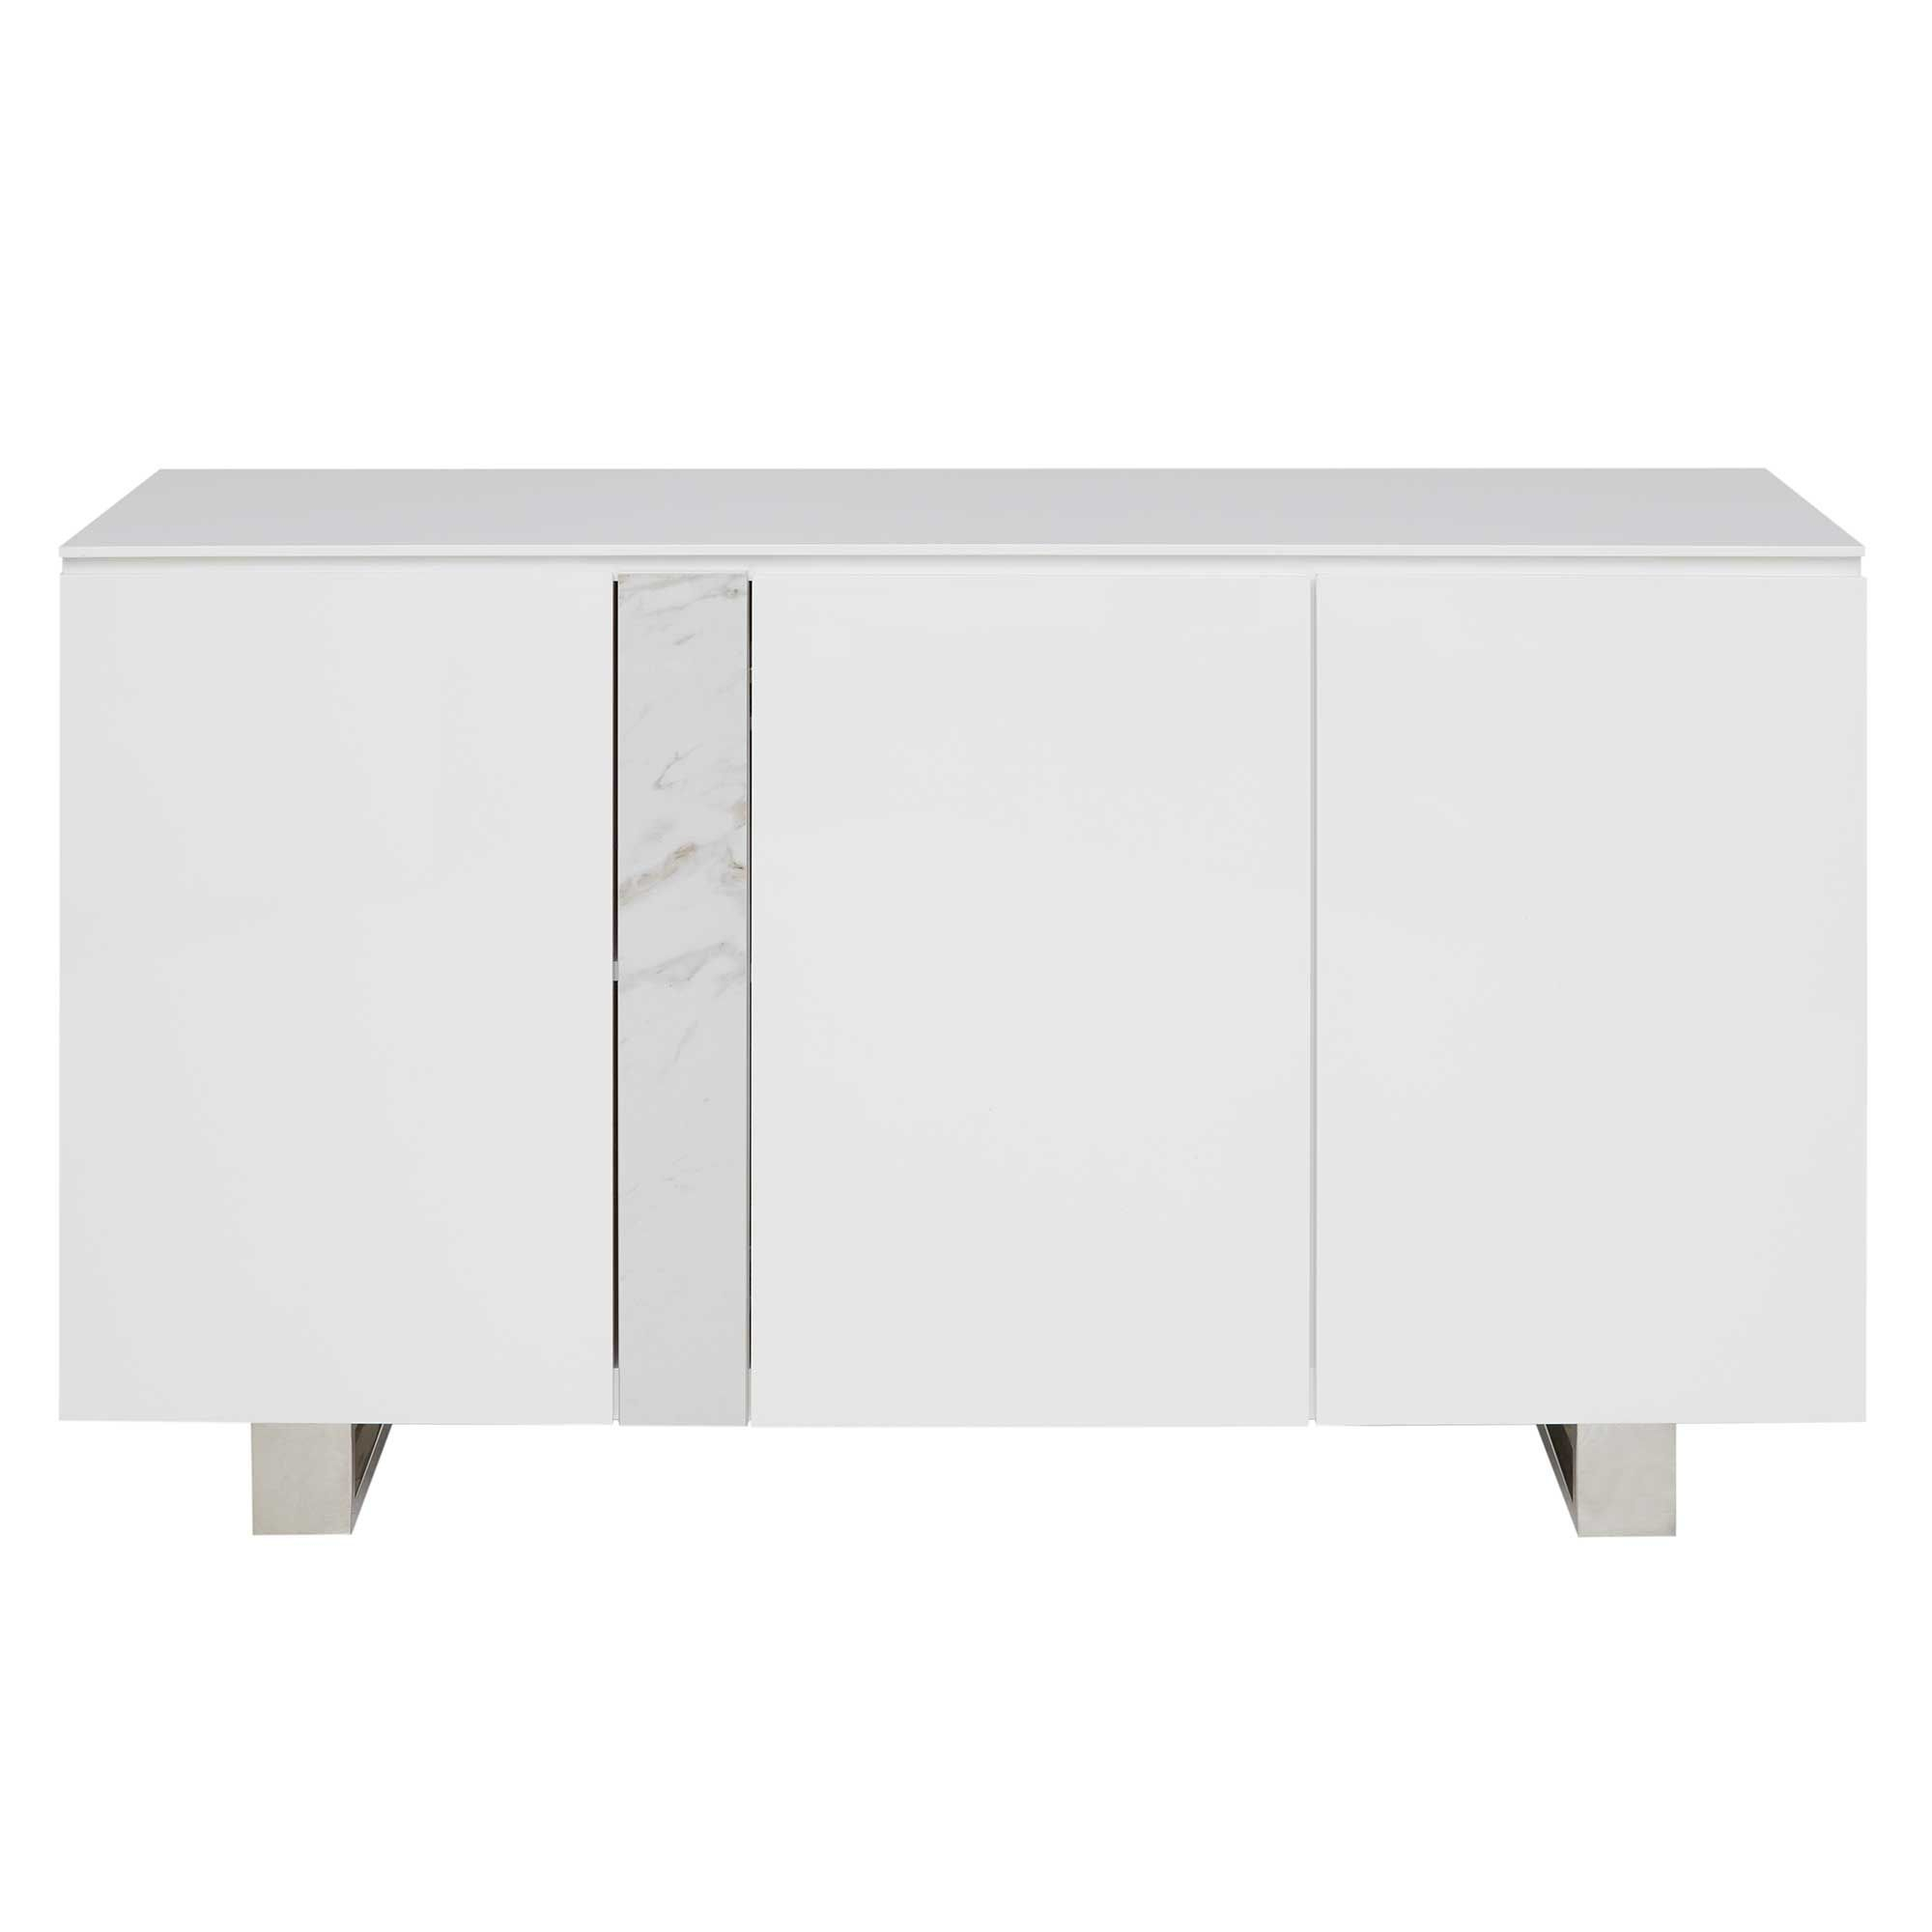 Inspiration about Ginostra 3 Door Sideboard, Gloss White | Sideboards | Dining Pertaining To Latest Thite Sideboards (#1 of 20)